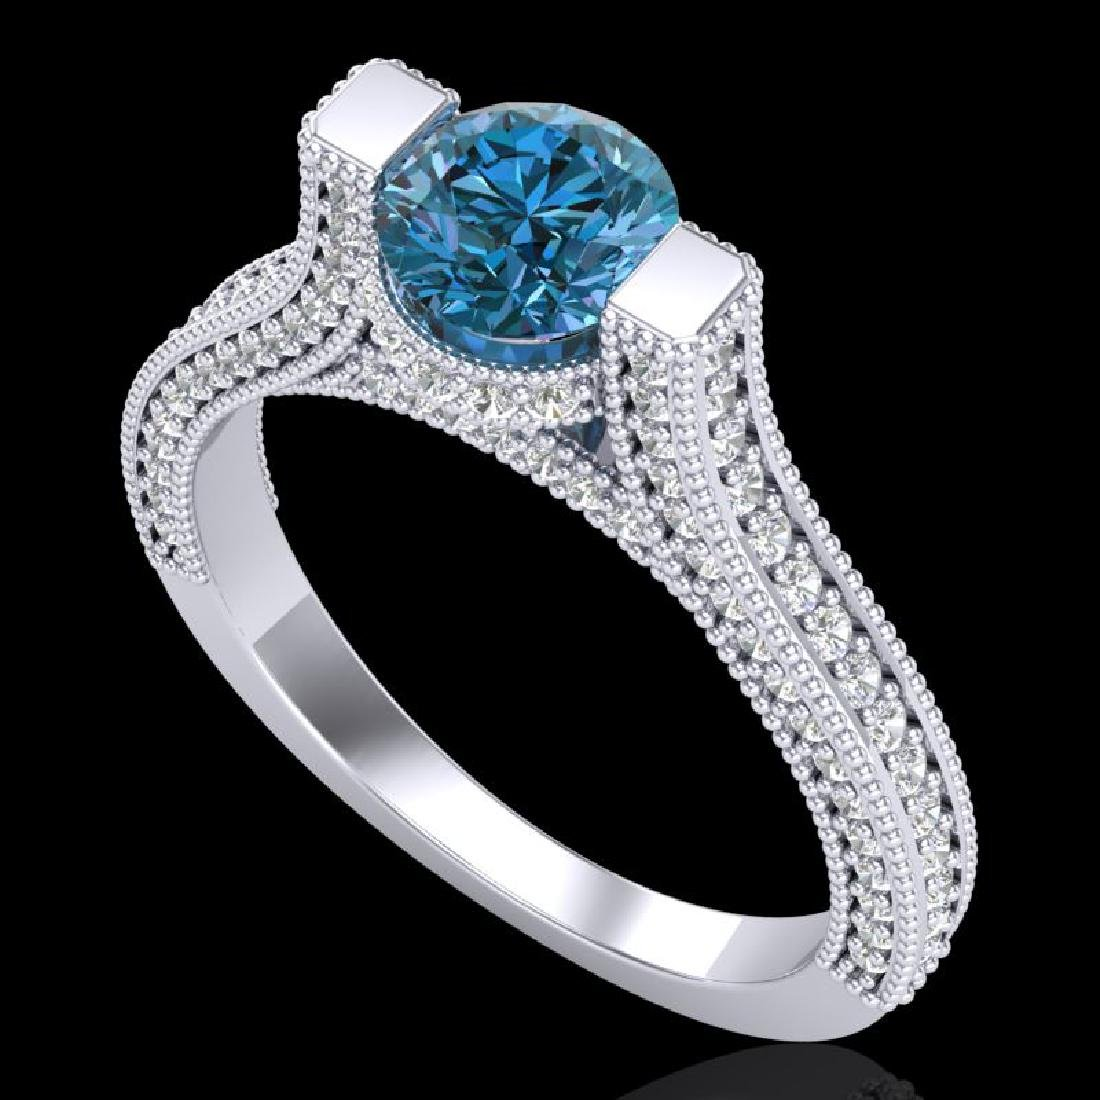 2 CTW Fancy Intense Blue Diamond Engagement Micro Pave